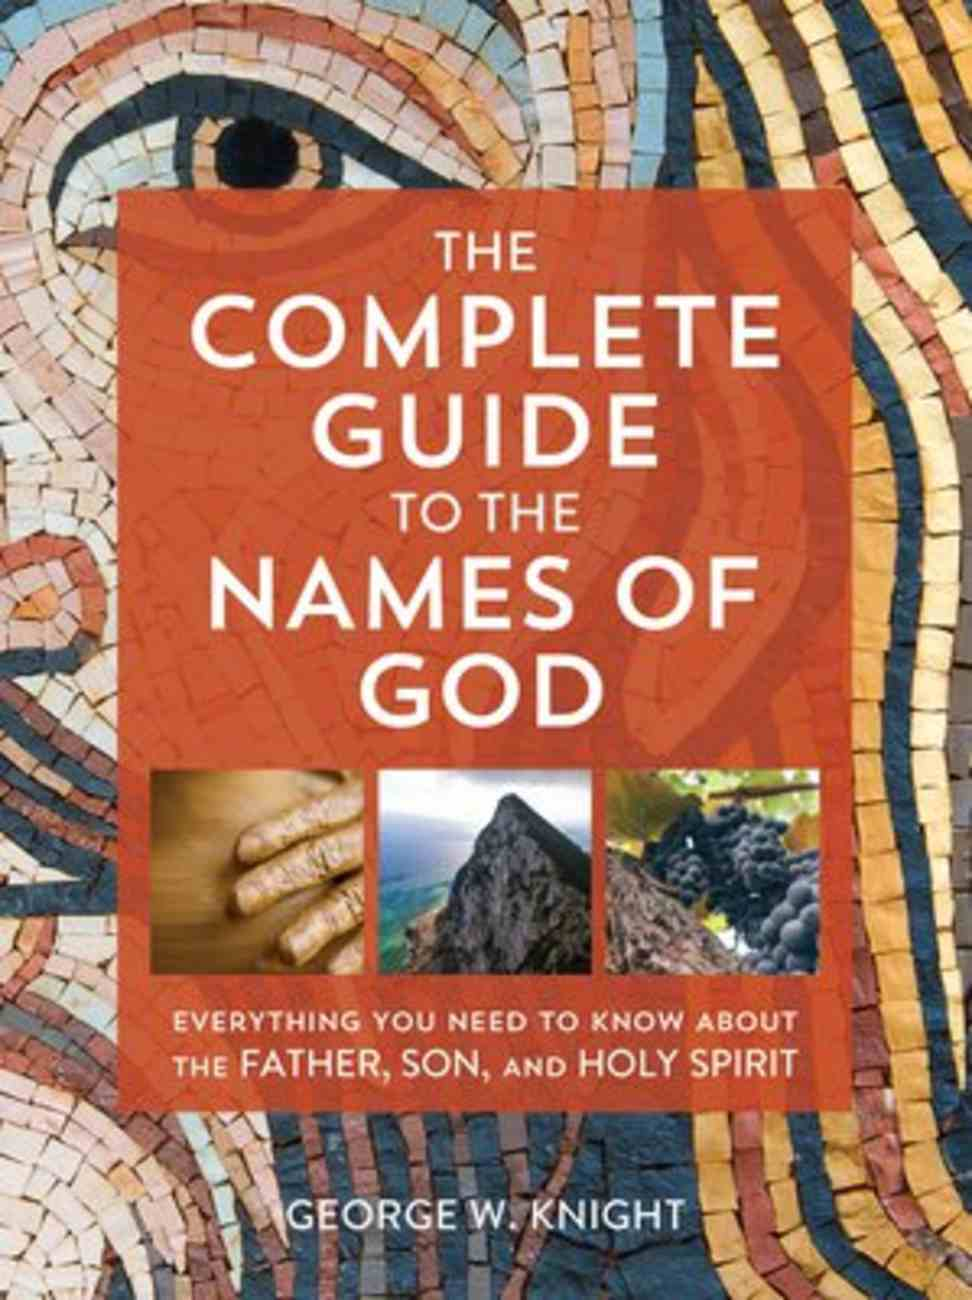 The Complete Guide to the Names of God: Everything You Need to Know About the Father, Son, and Holy Spirit Paperback